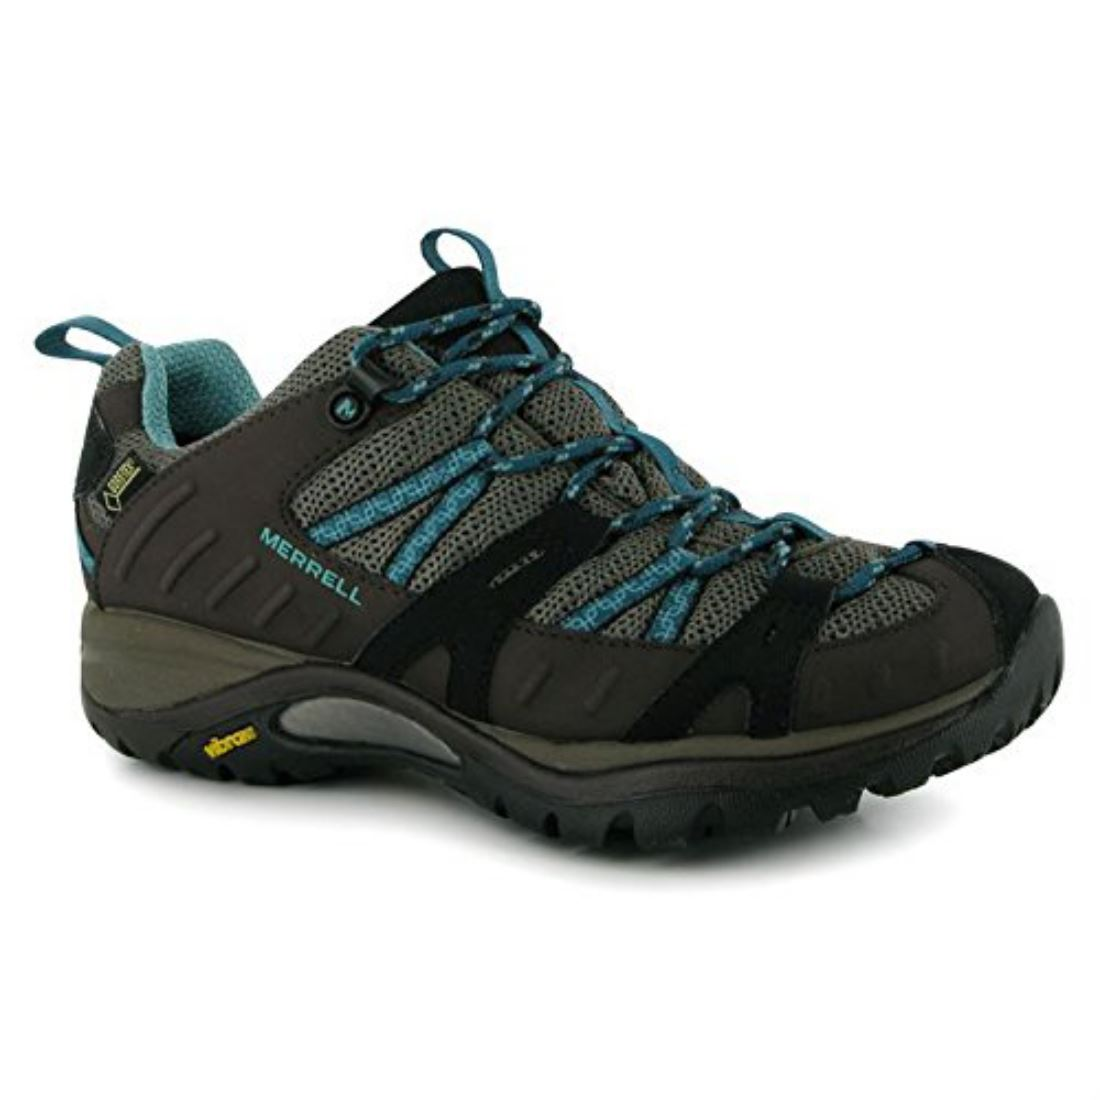 Innovative Merrell Azura Mid GoreTex Womens Outdoors Boots Air Cushion Shoes